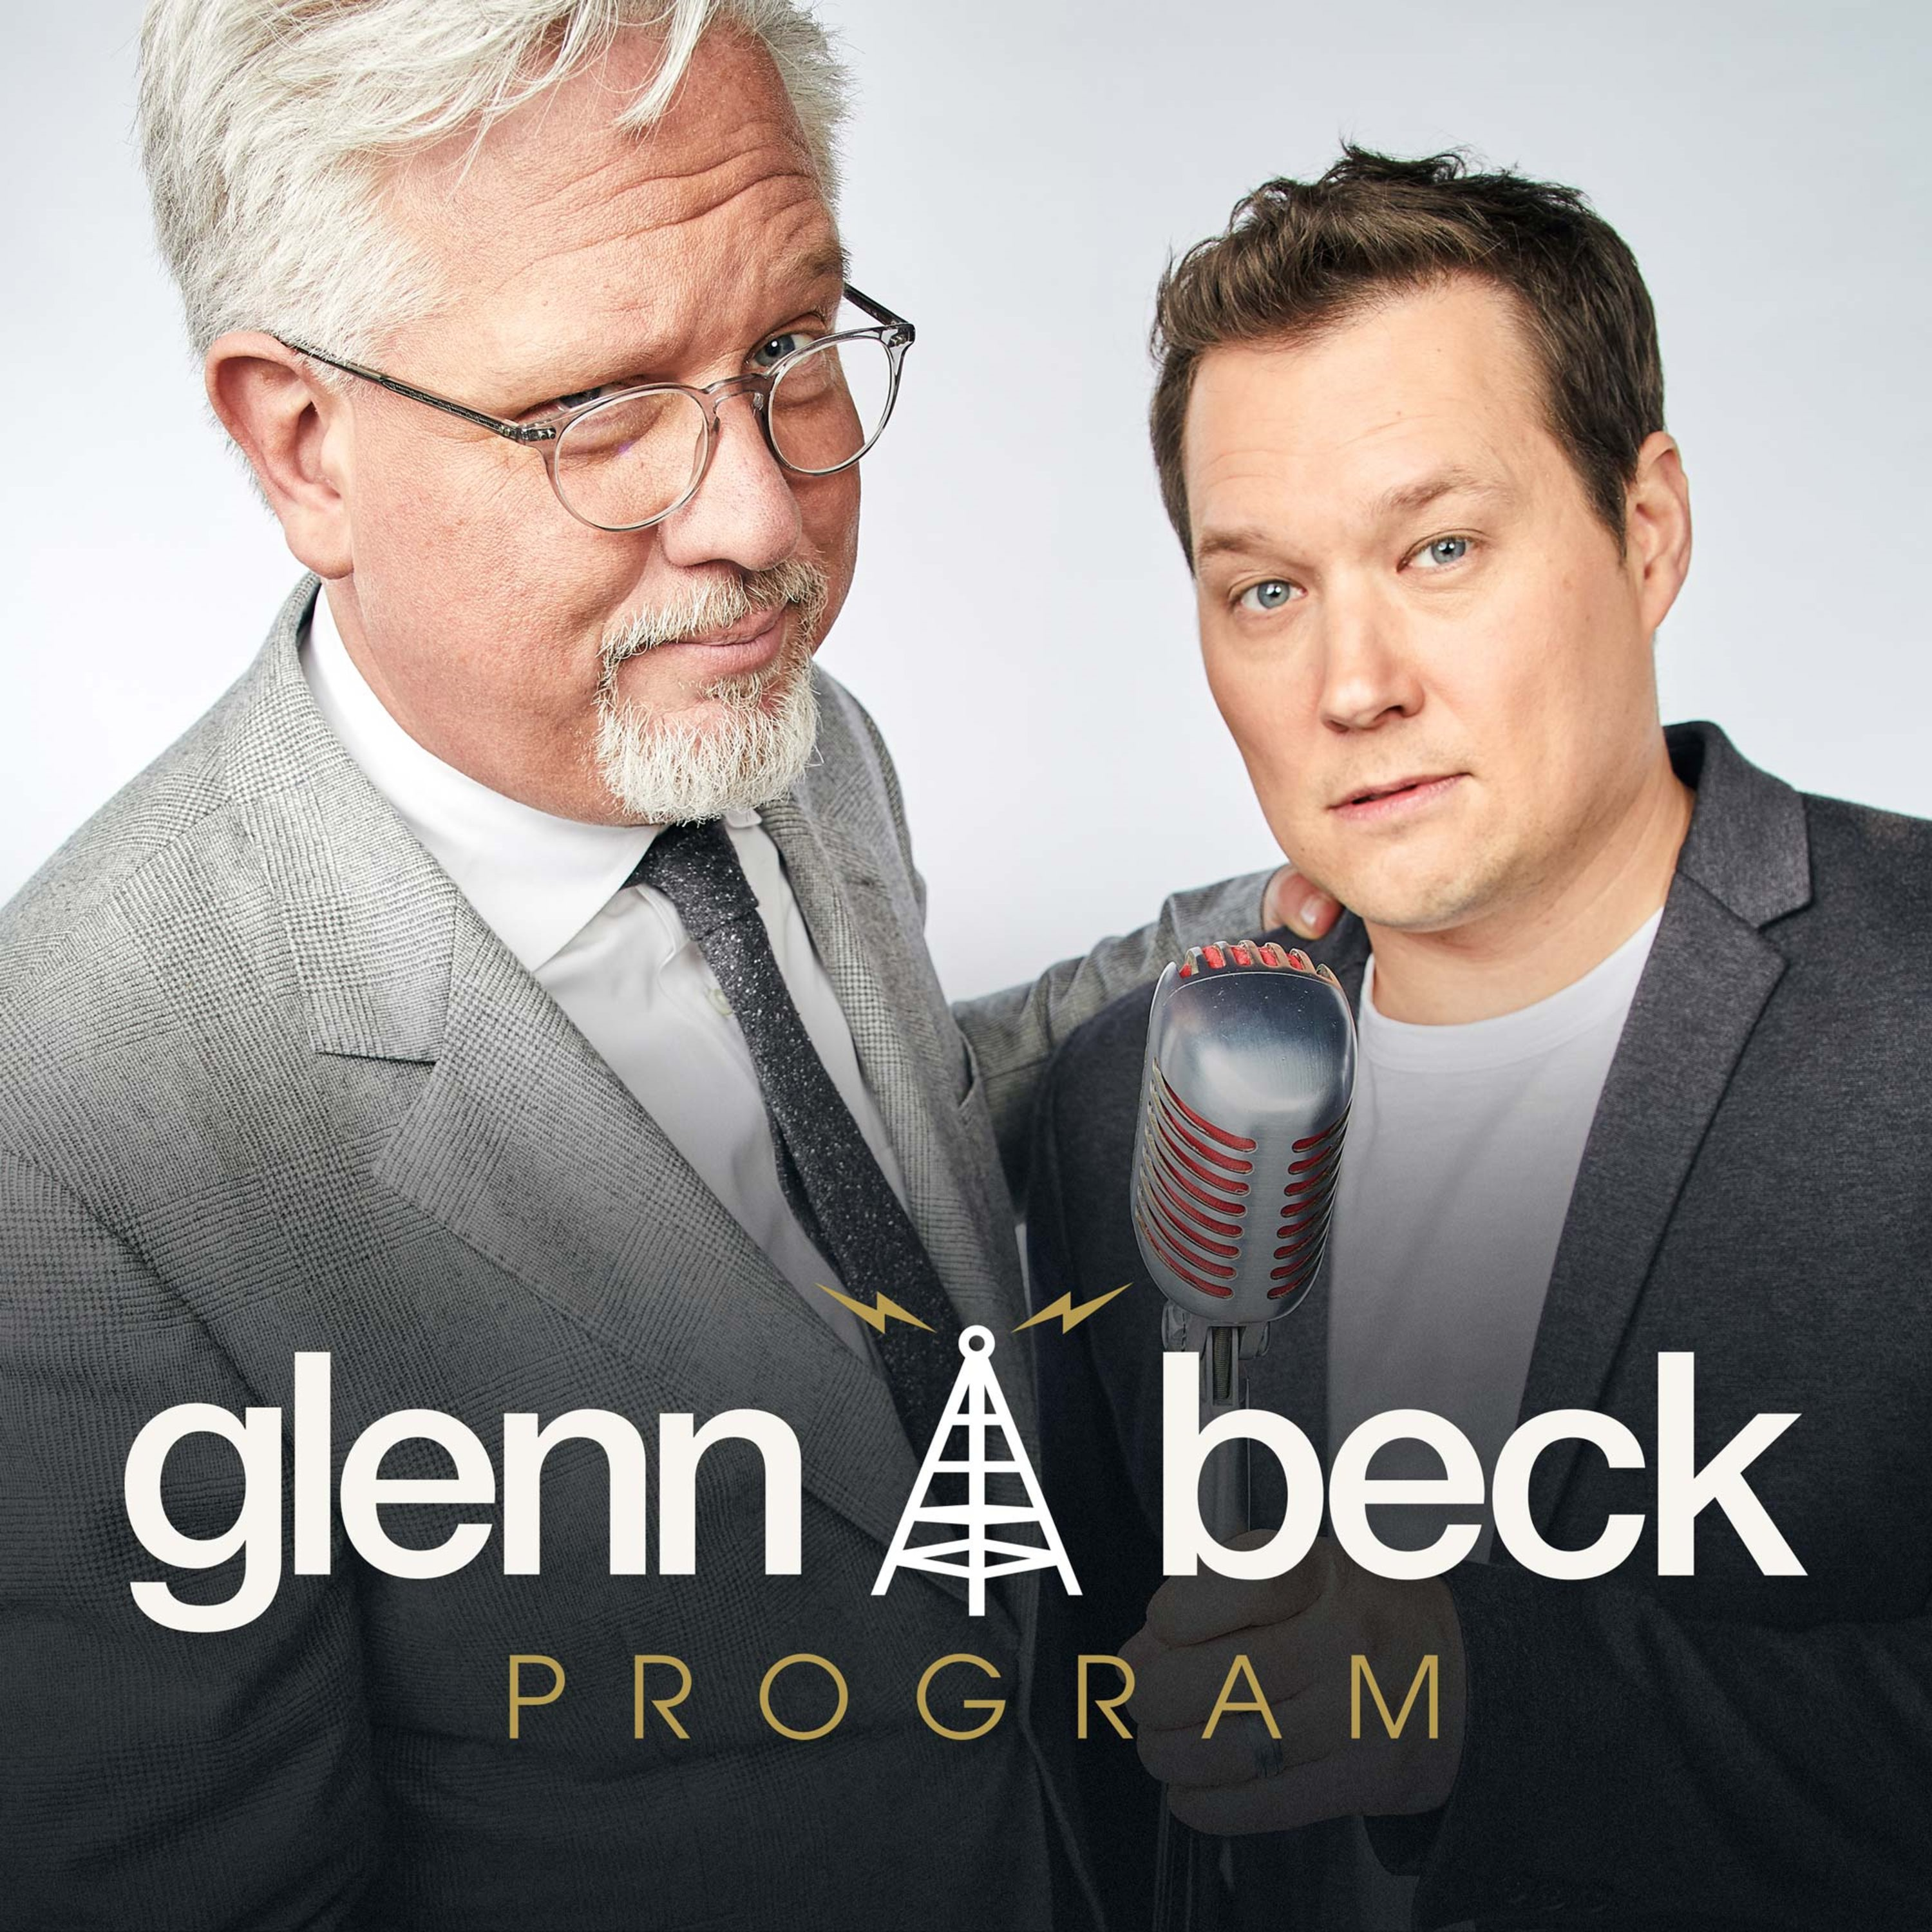 The Glenn Beck Program Logo